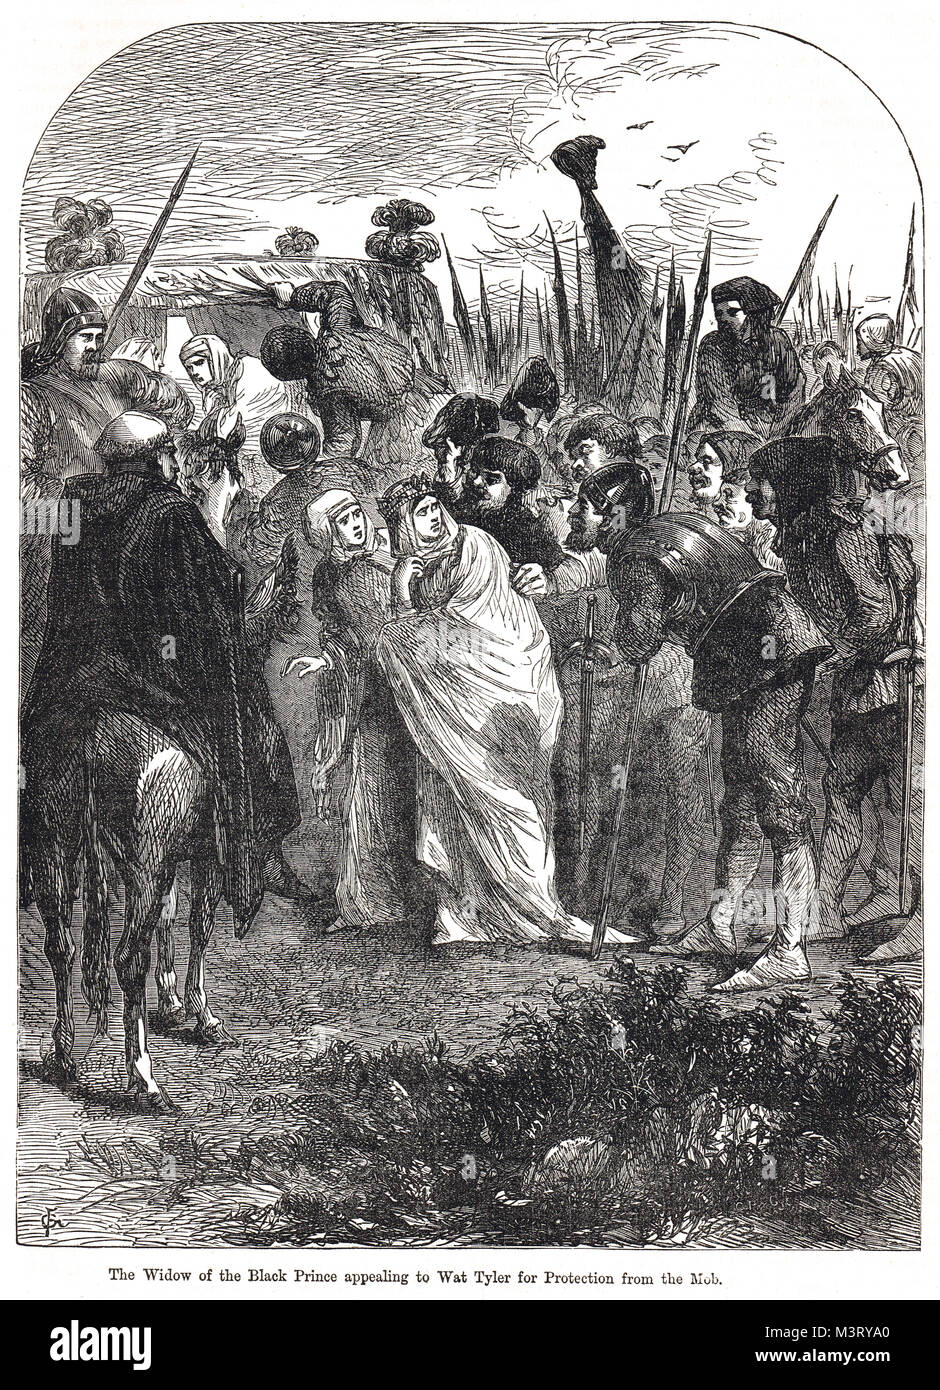 Joan of Kent, Widow of the Black Prince, appealing to Wat Tyler, asking for protection from the mob during the Peasants' - Stock Image